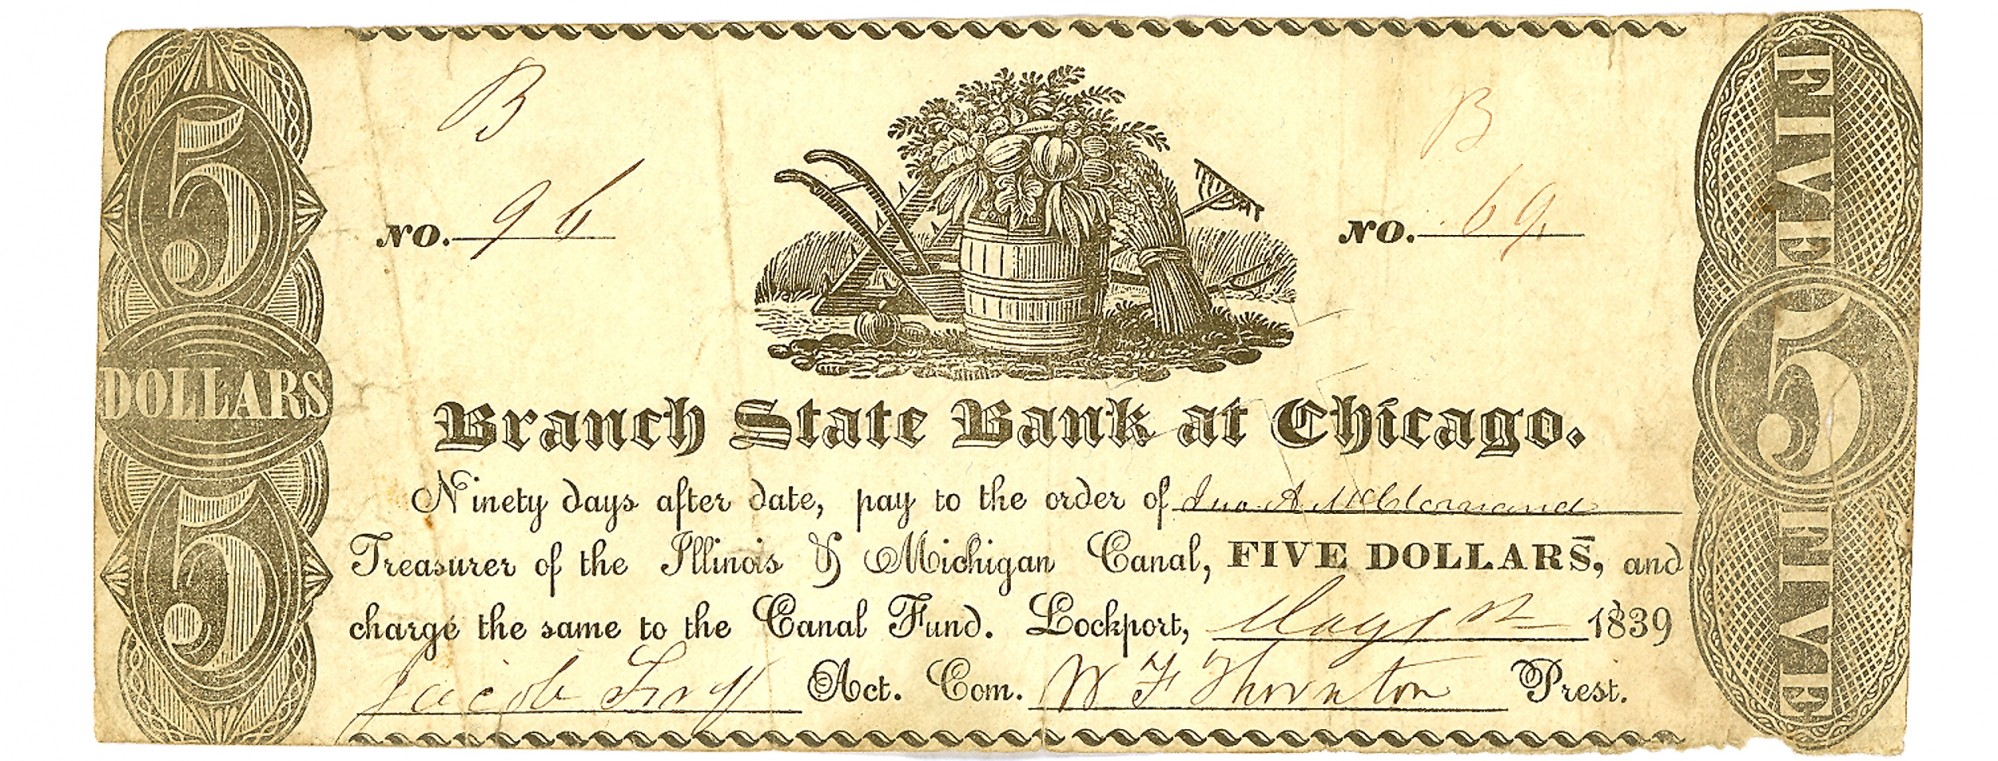 BRANCH STATE BANK AT CHICAGO $5 NOTE